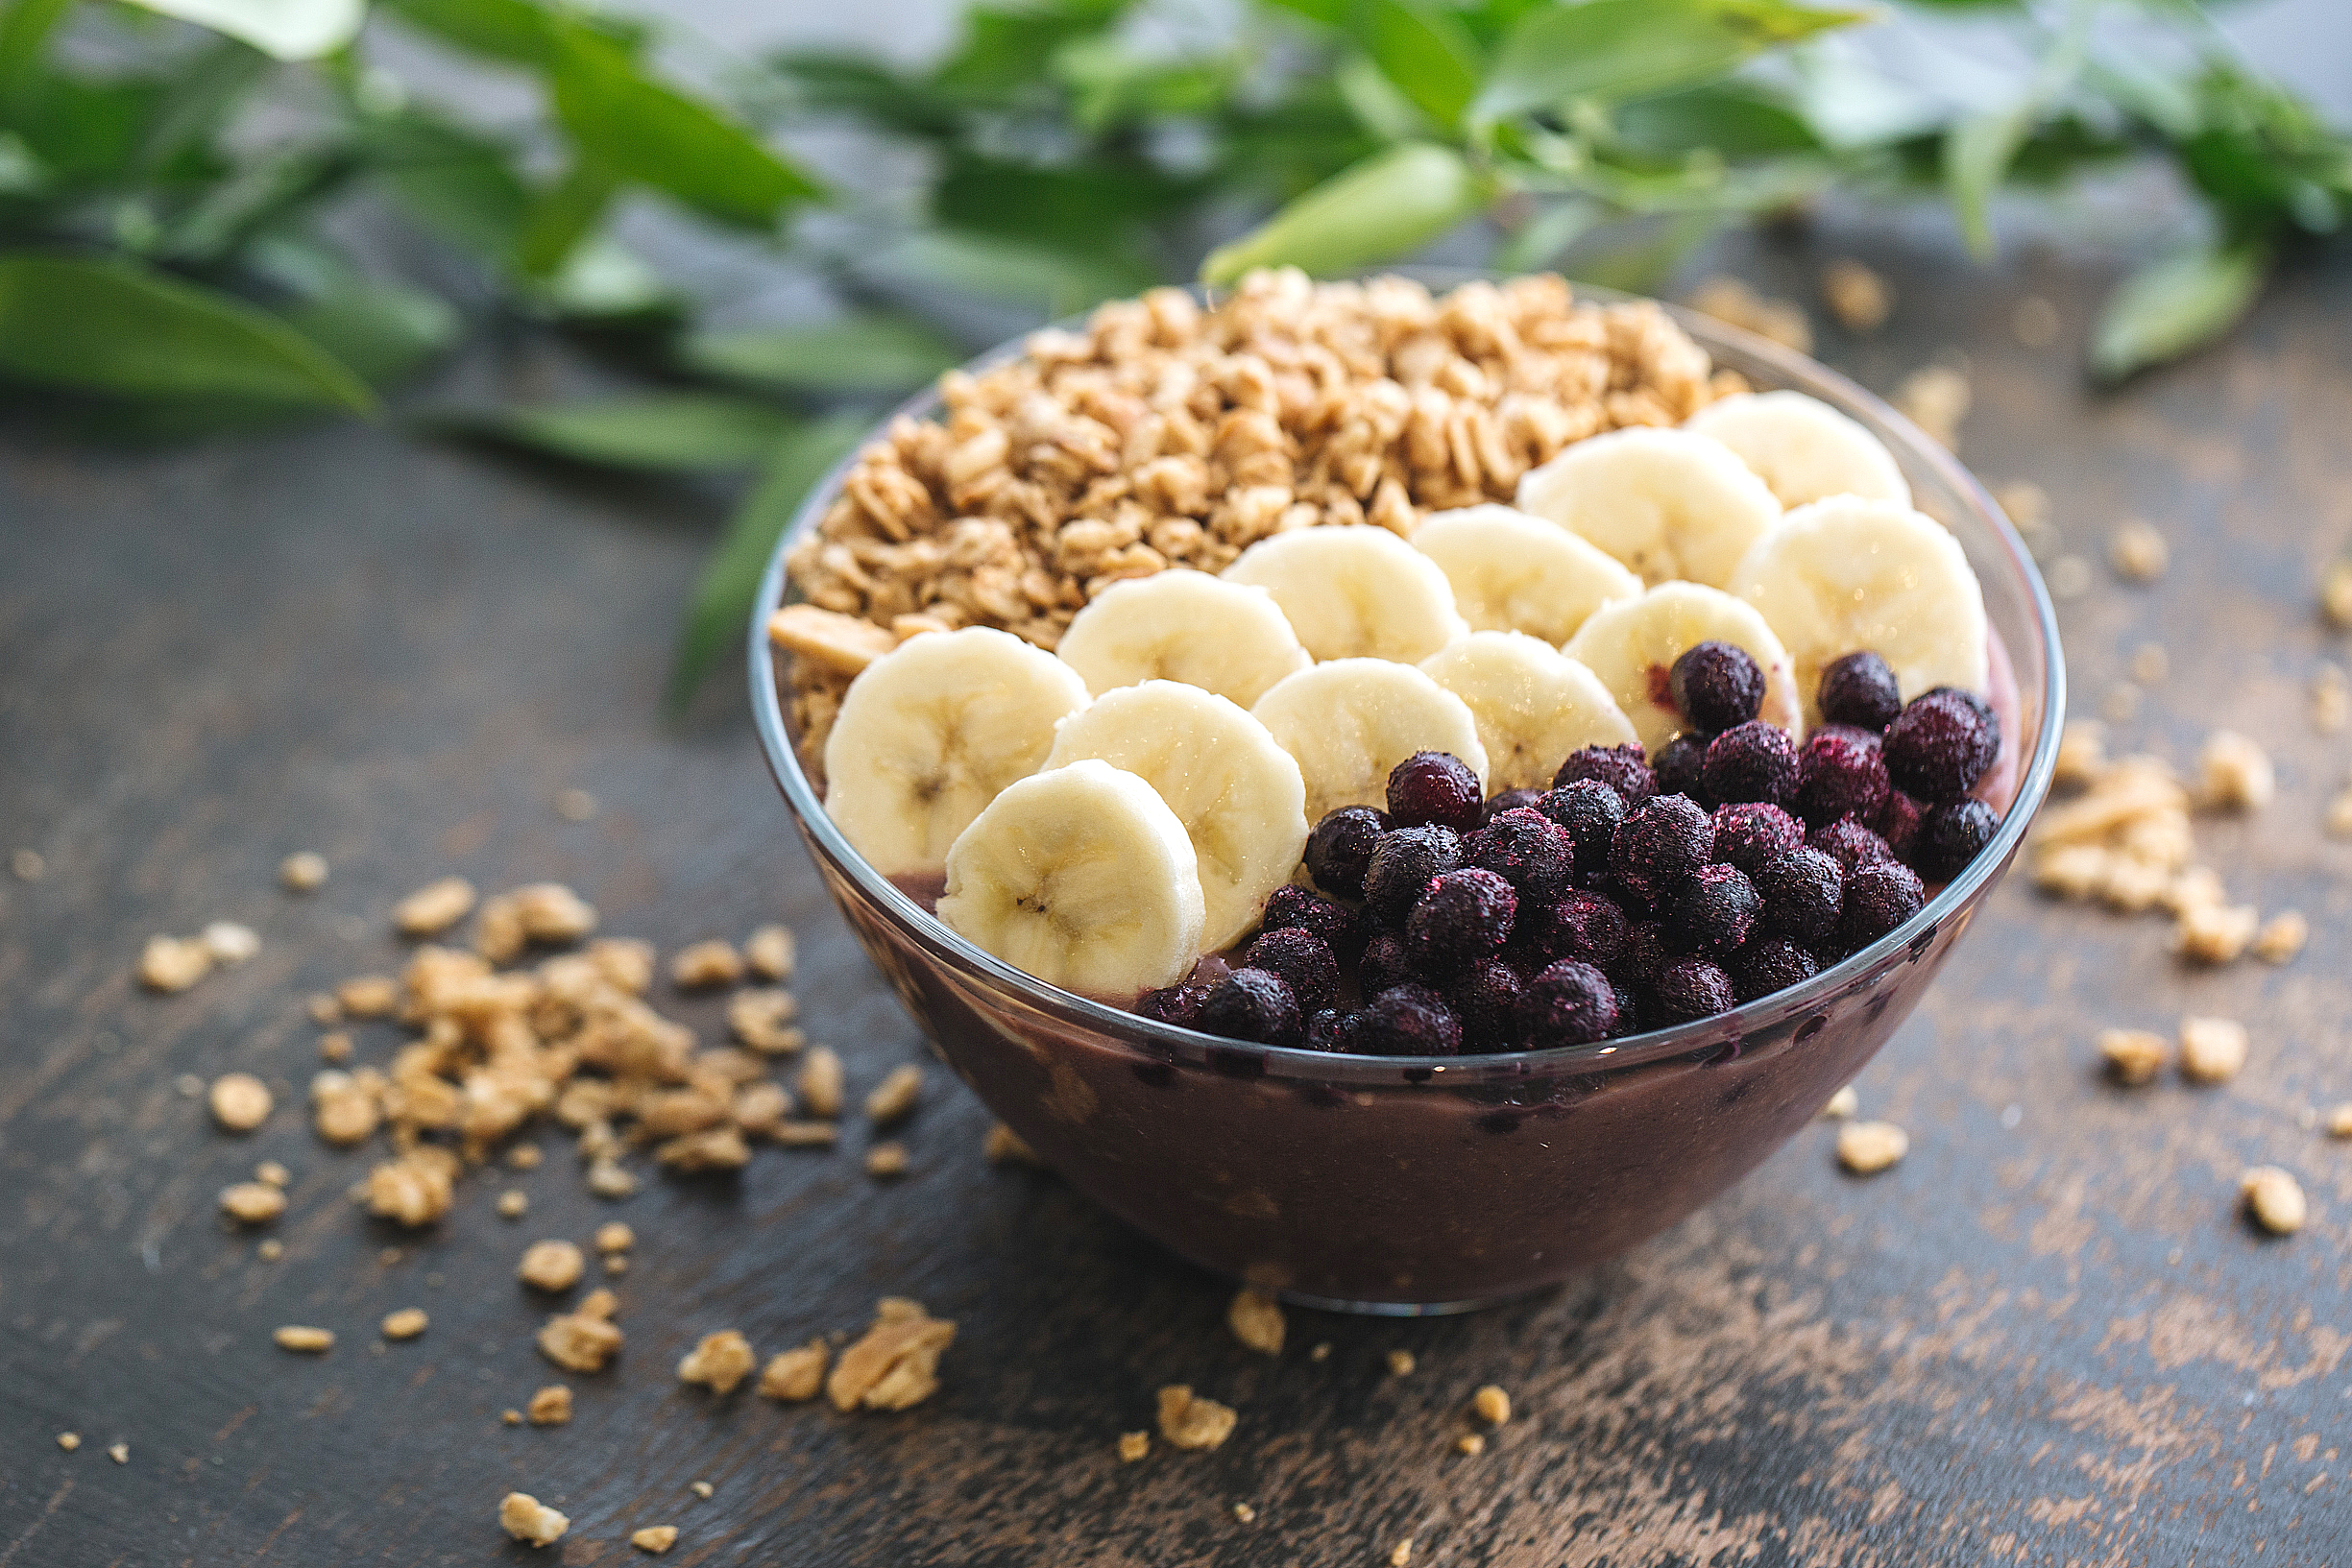 Almond butter açai smoothie bowl: açai, banana, pineapple, almond milk – topped with blueberries, granola, shredded coconut and almond butter